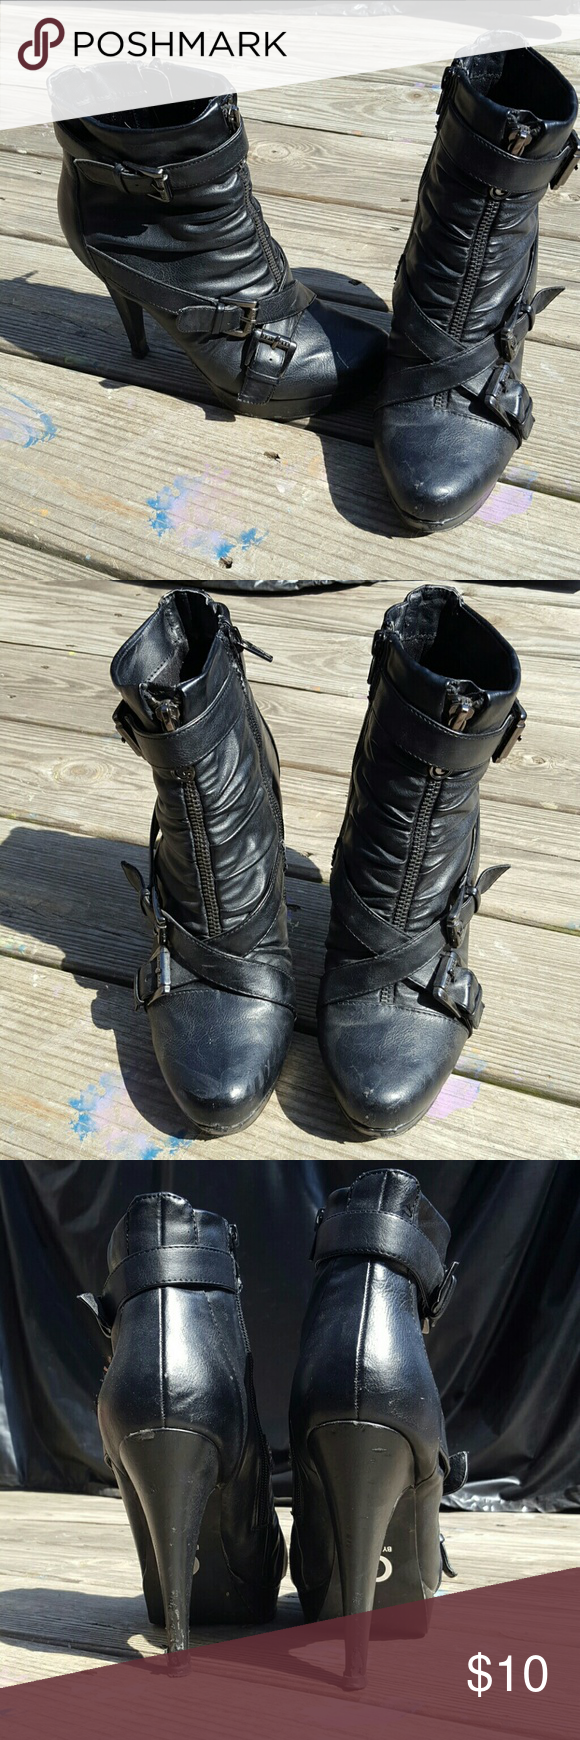 $5 Sale🎁G by Guess black booties. 8.5 Sexy black booties. Preloved condtion. Bundle and save!! G by Guess Shoes Ankle Boots & Booties